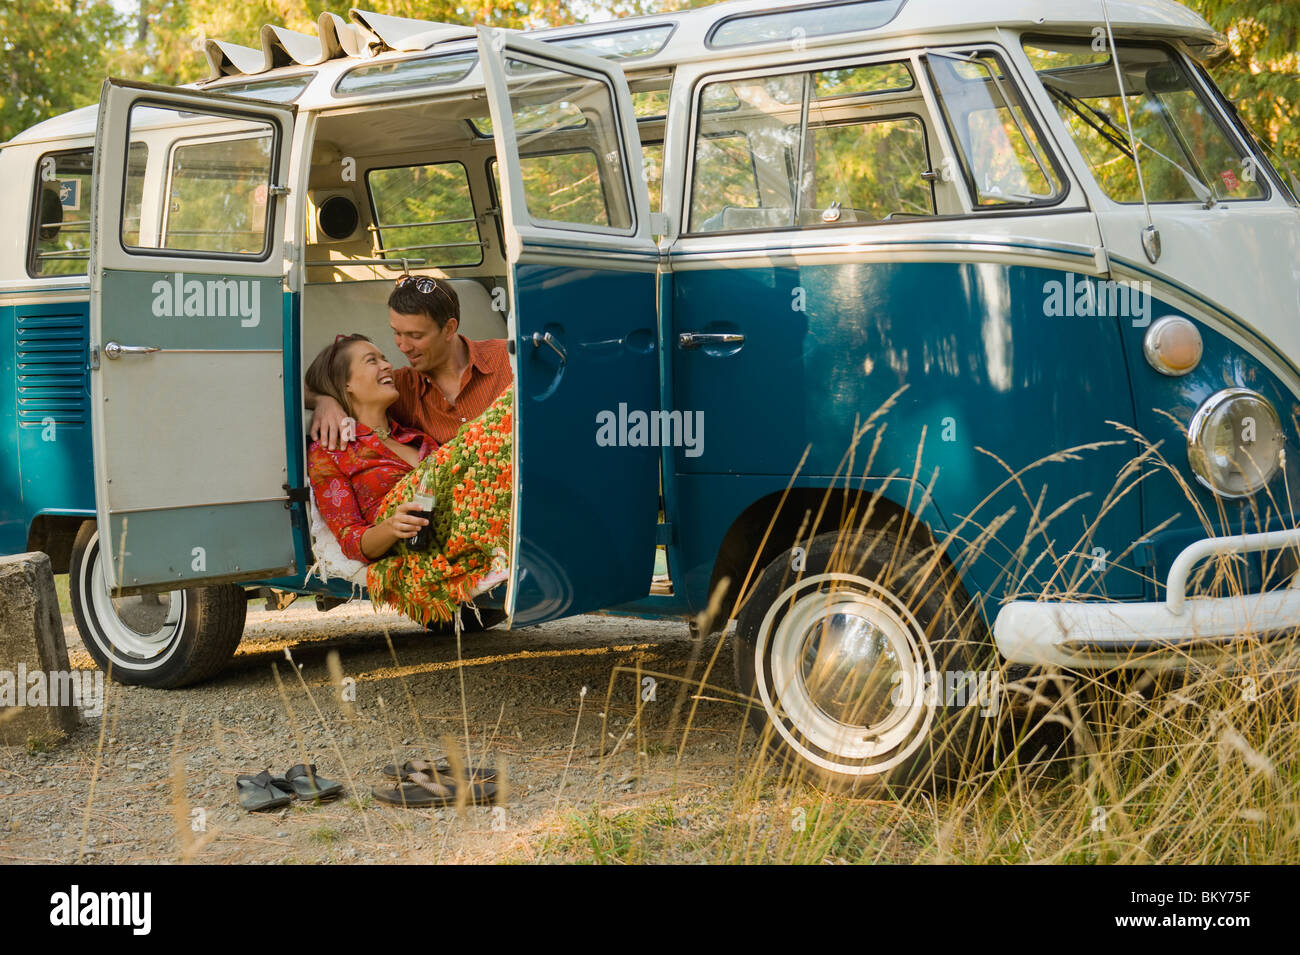 A young couple relax inside a classic van. - Stock Image